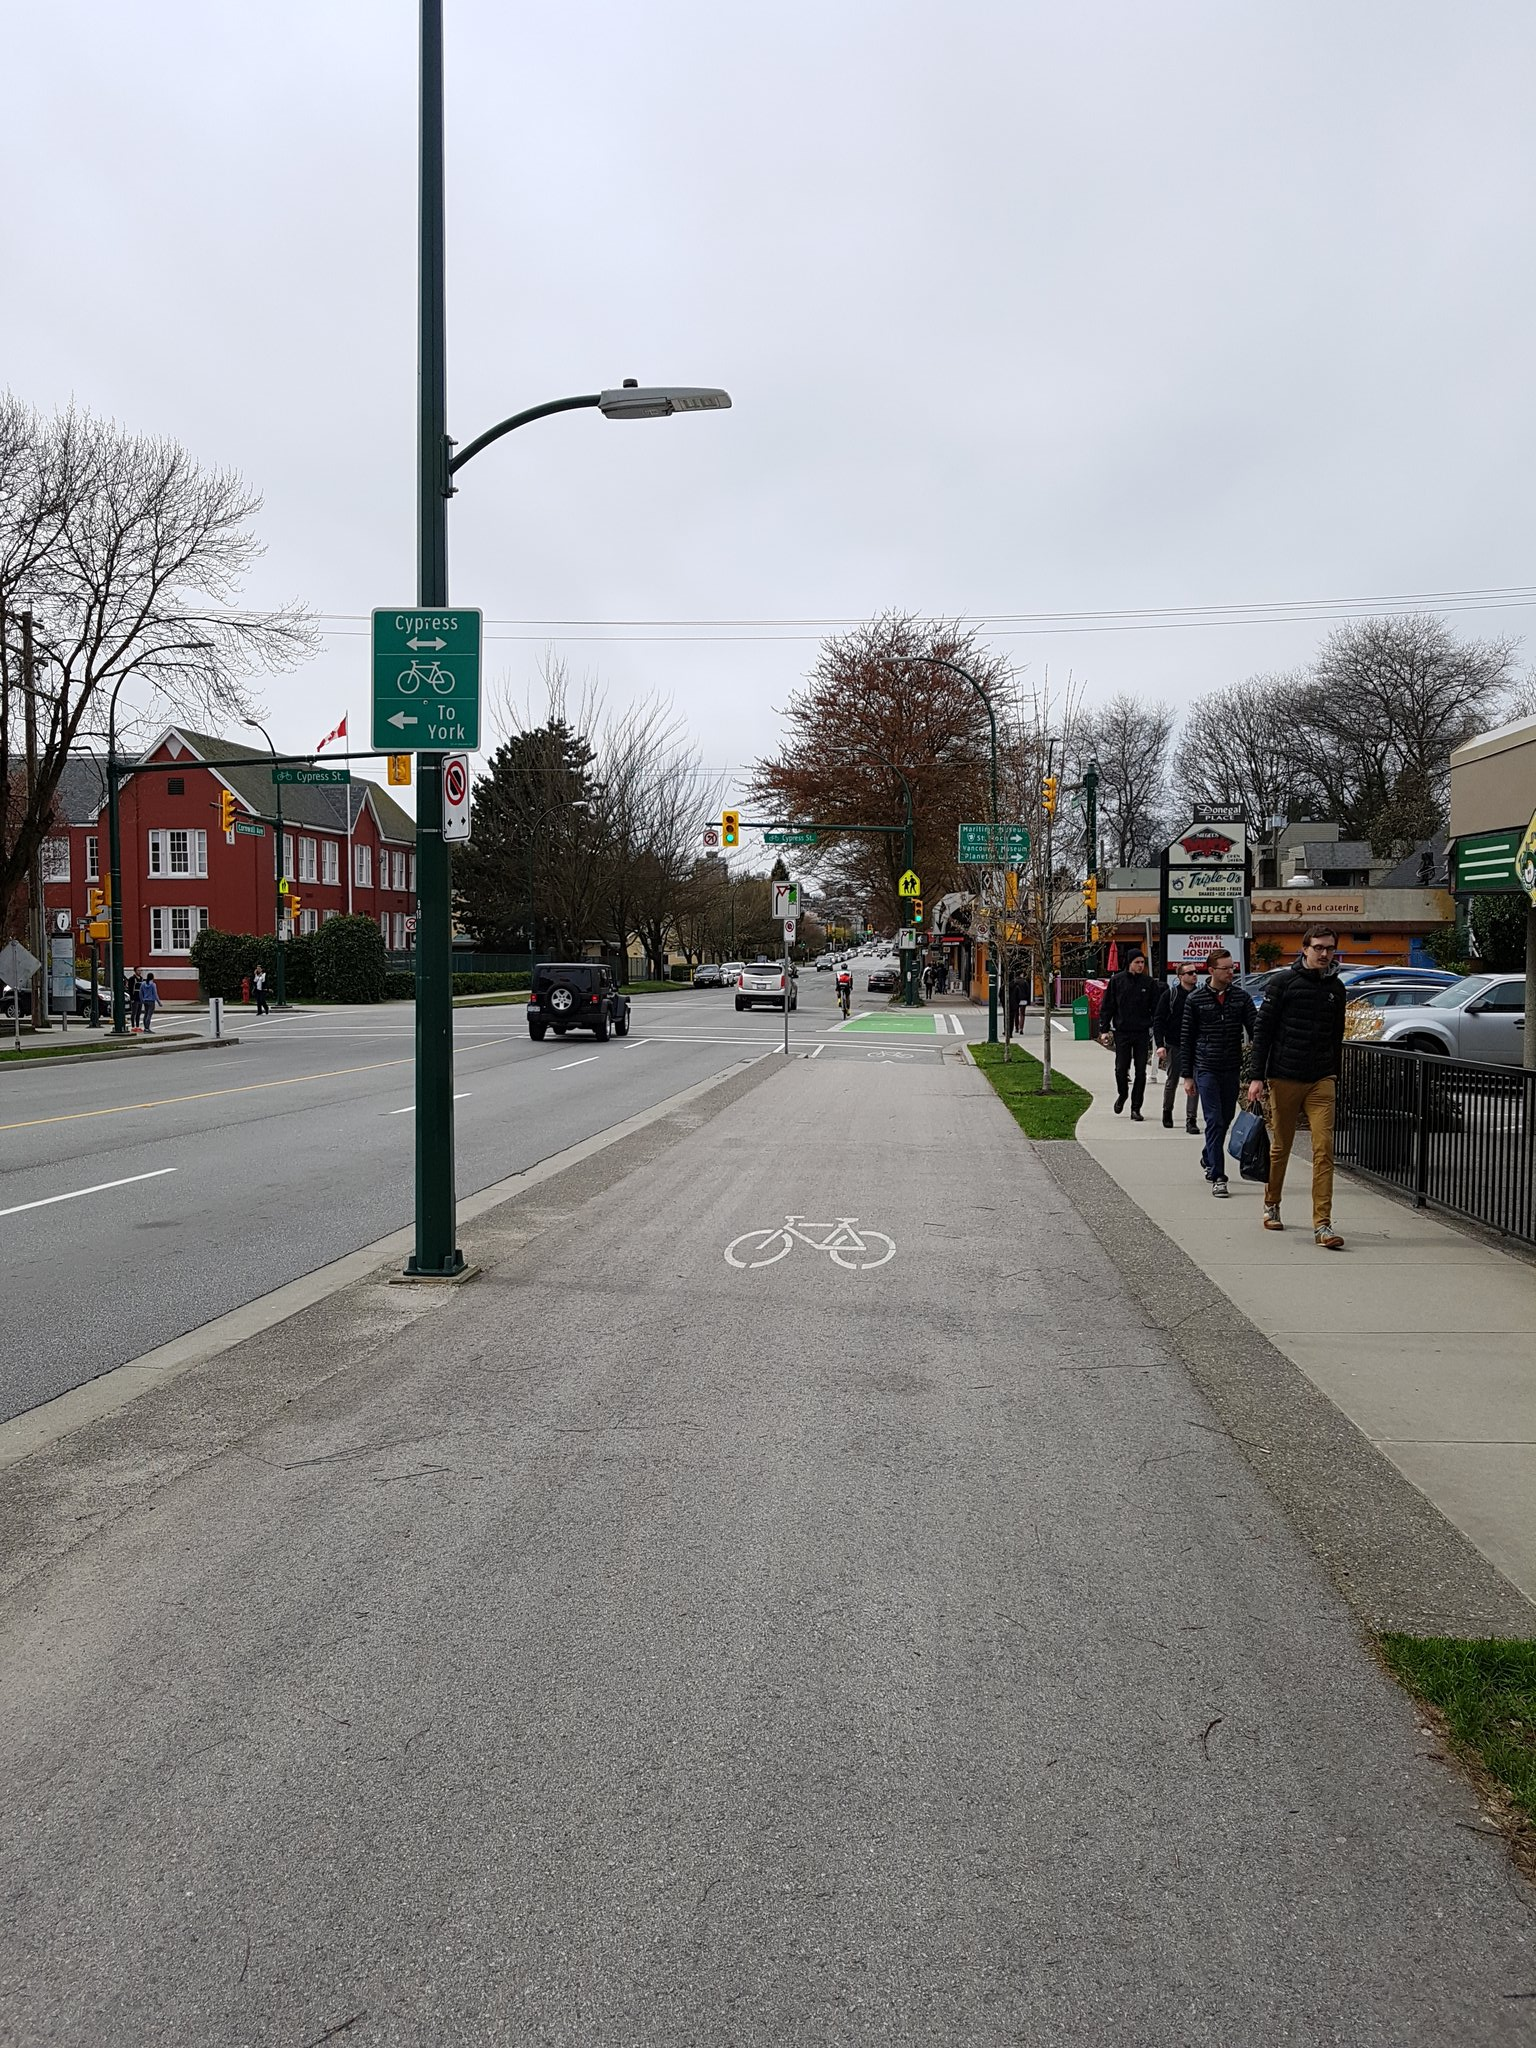 Even in Vancouver, sometimes the bike lane just ends, forcing bike riders to share #yyjbike https://t.co/GARIdUwRCg